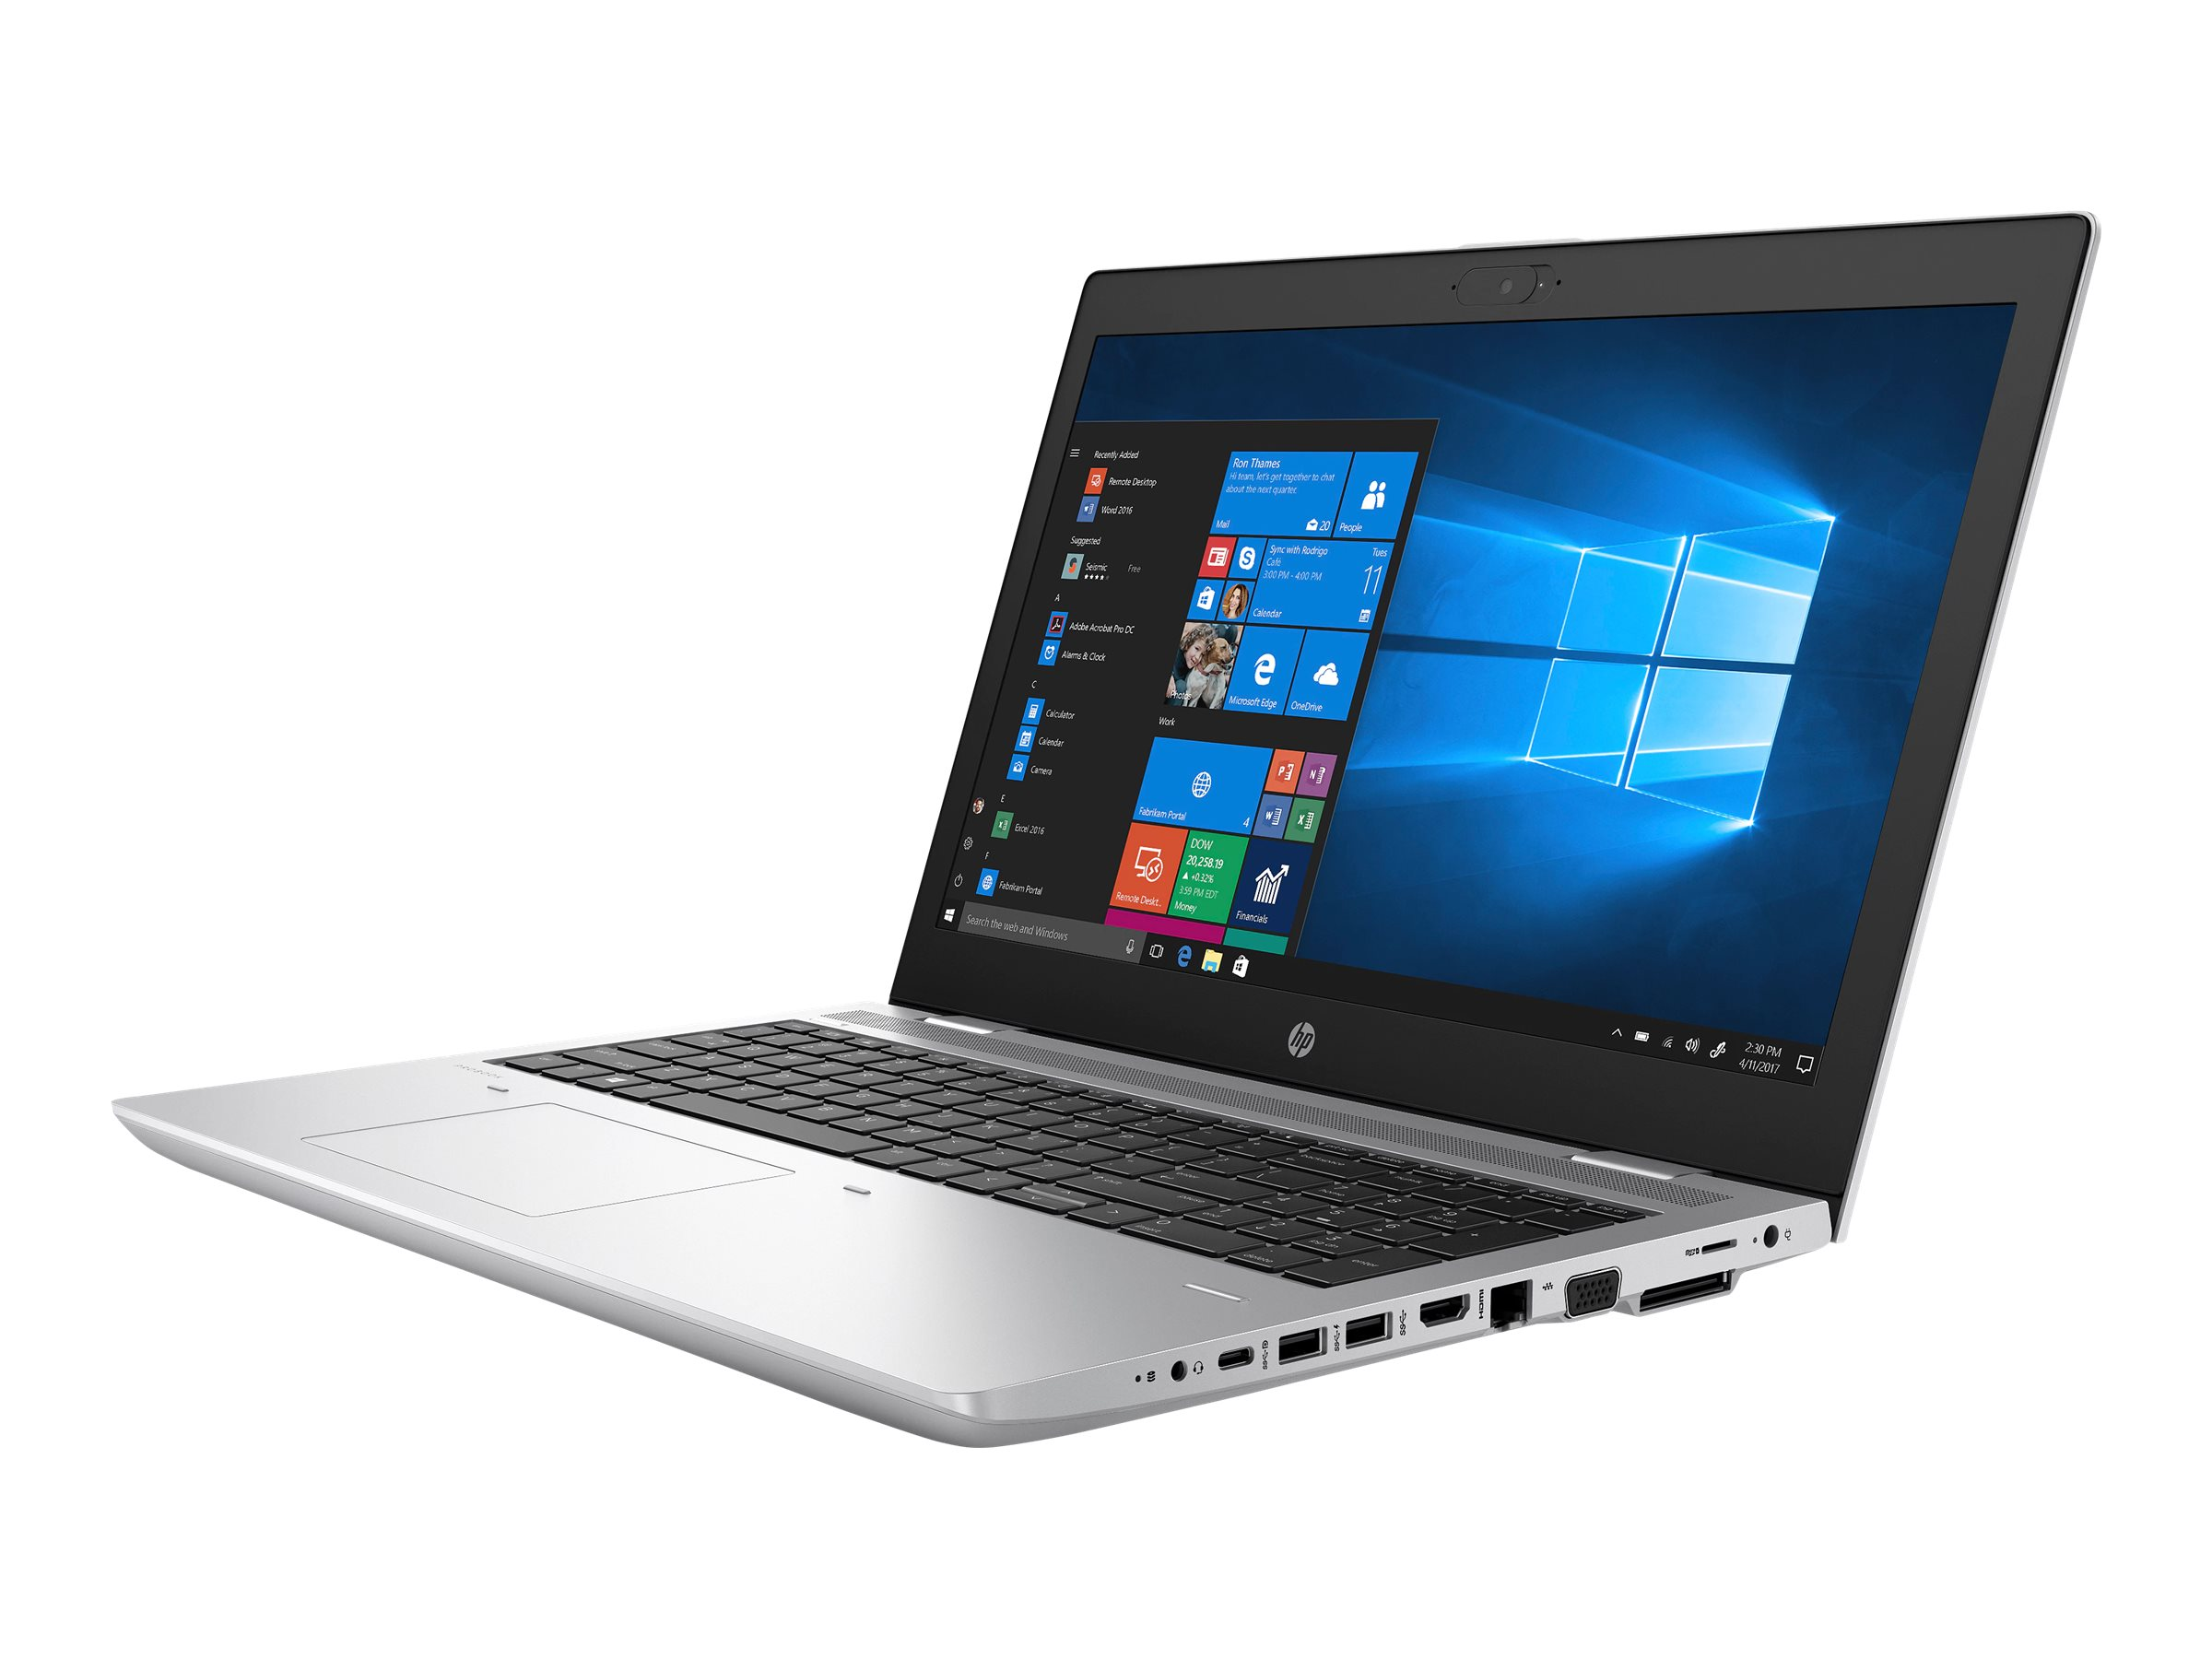 Hp probook 650 g4 core i7 8550u 1 8 ghz win 10 pro 64 bit 16 gb ram 512 gb ssd nvme tlc dvd writer 8696264 3up60ea abd